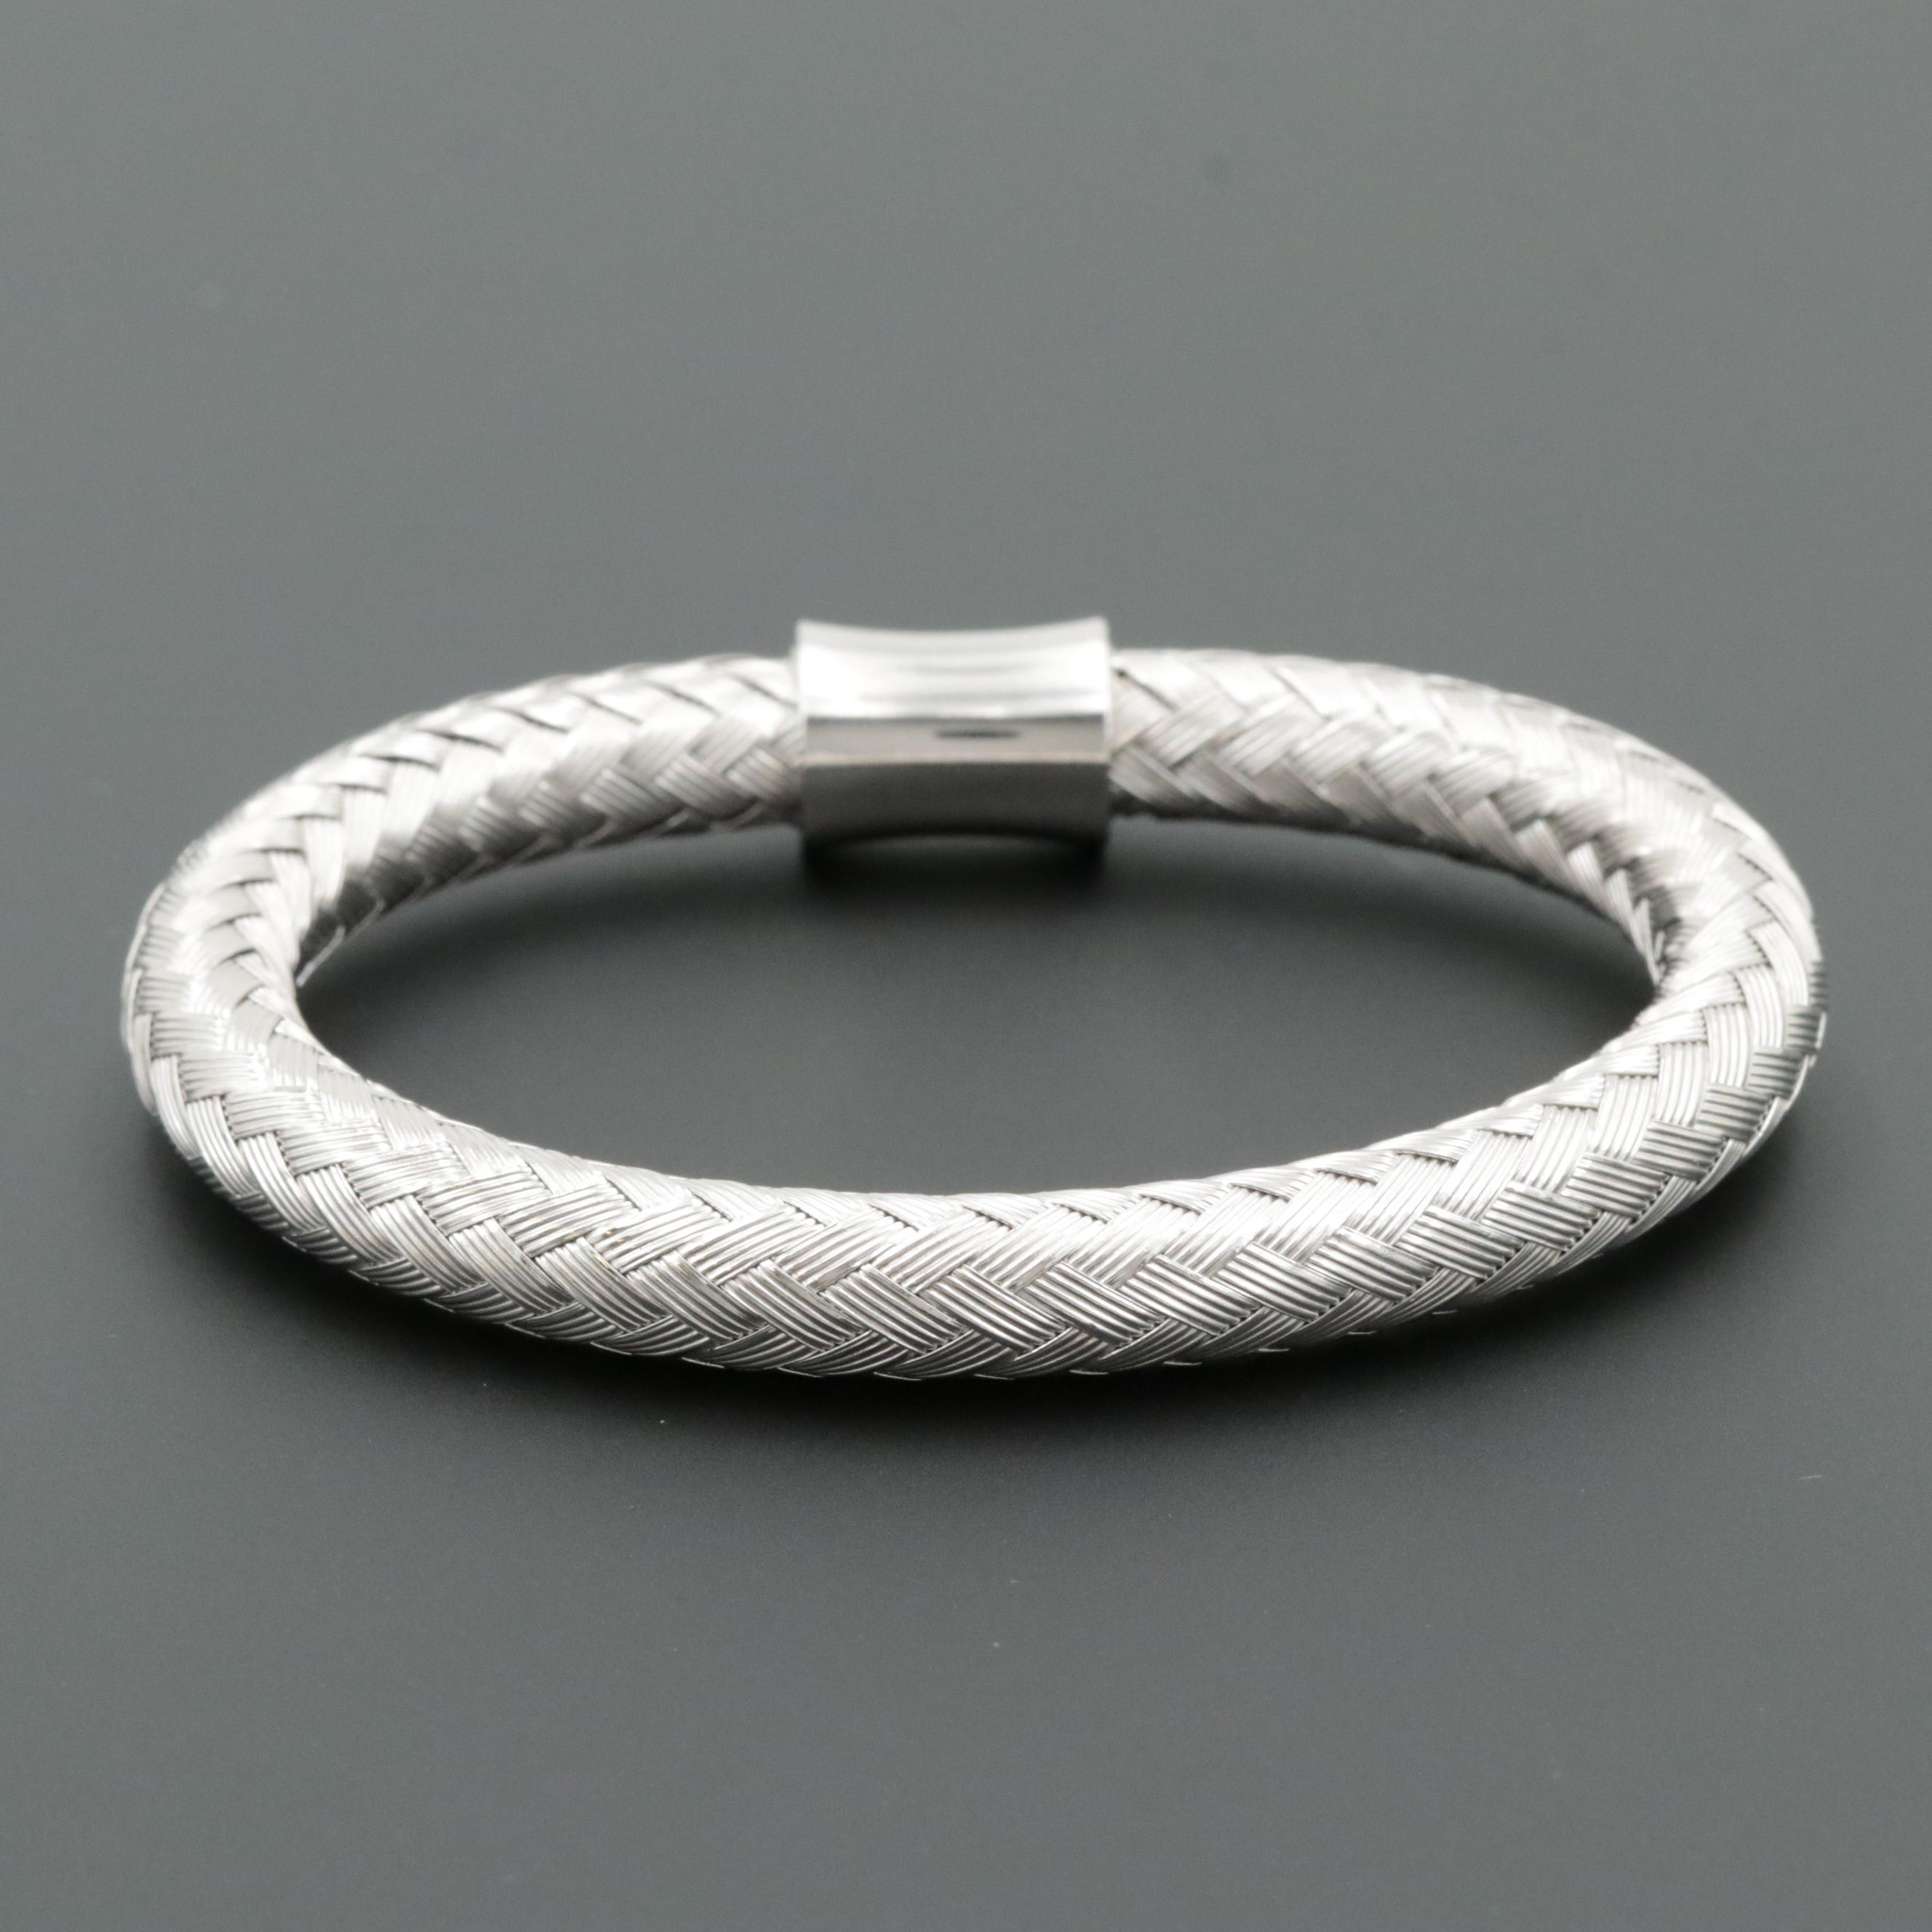 Silver Tone Woven Flexible Bangle Bracelet